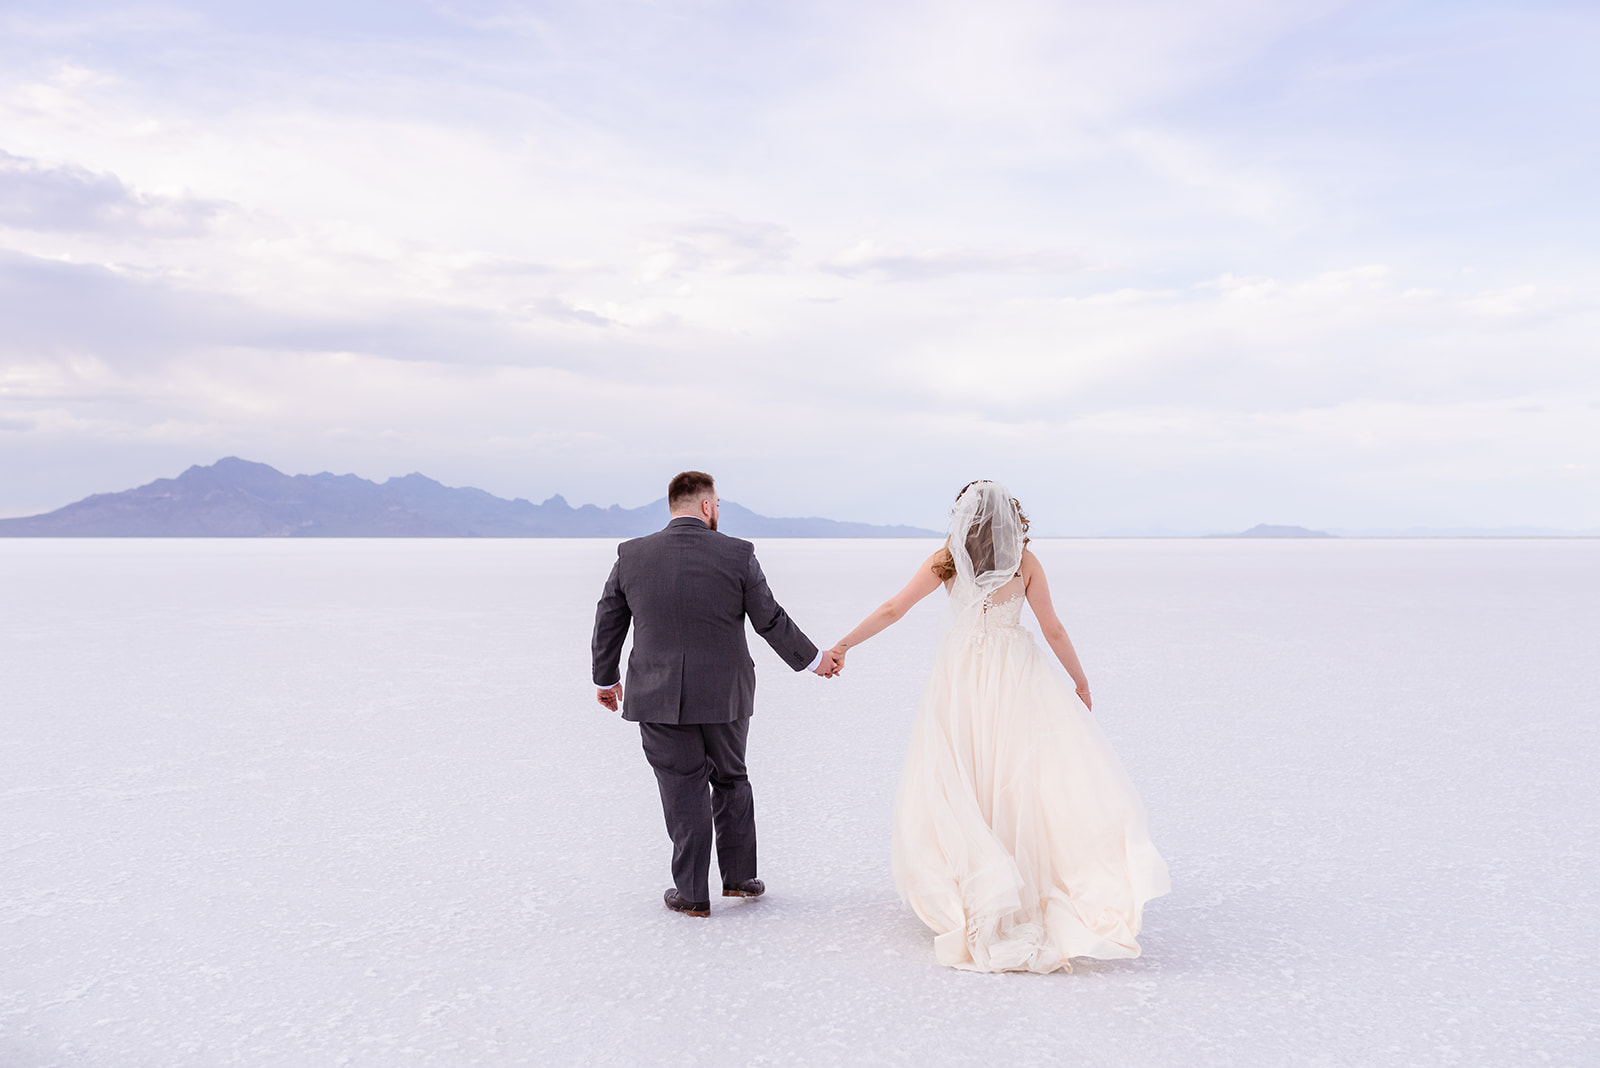 Walking hand in hand as bride and groom at the Bonneville Salt Falts in Utah. Taken by Coley Cook Photography.